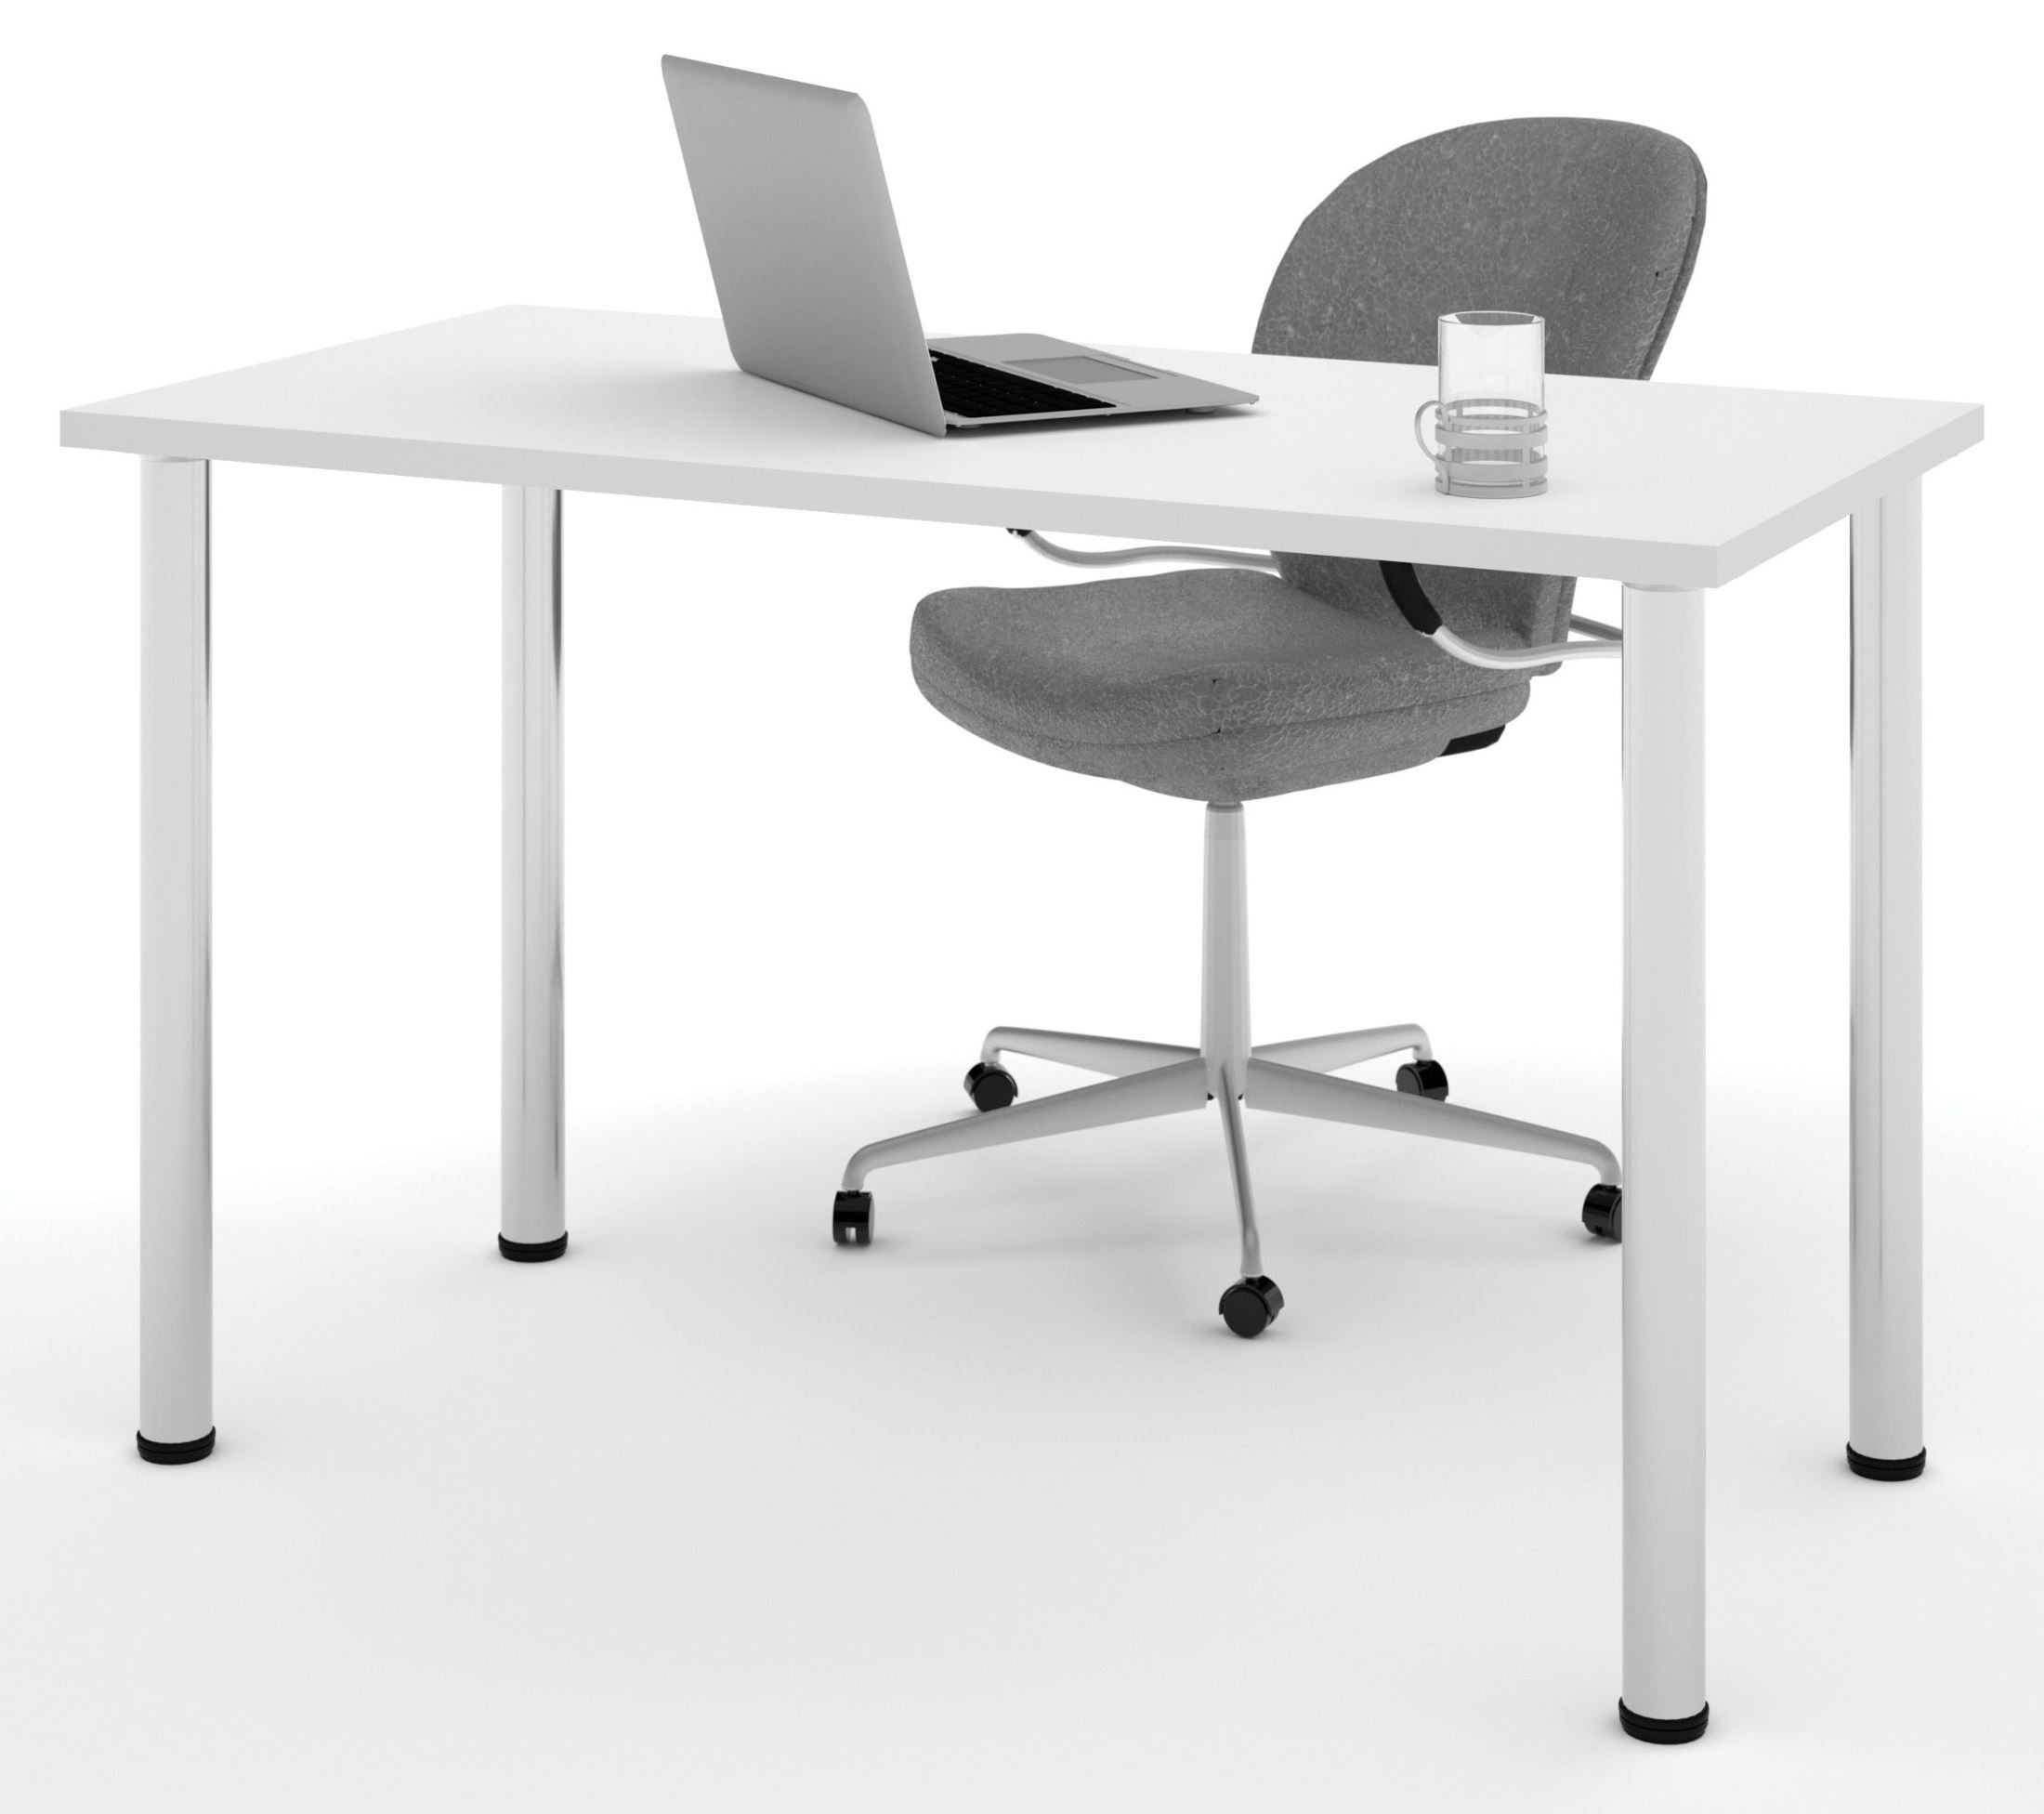 Metal Leg Desk 48 Quot White Round Metal Leg Table From Bestar 65852 17